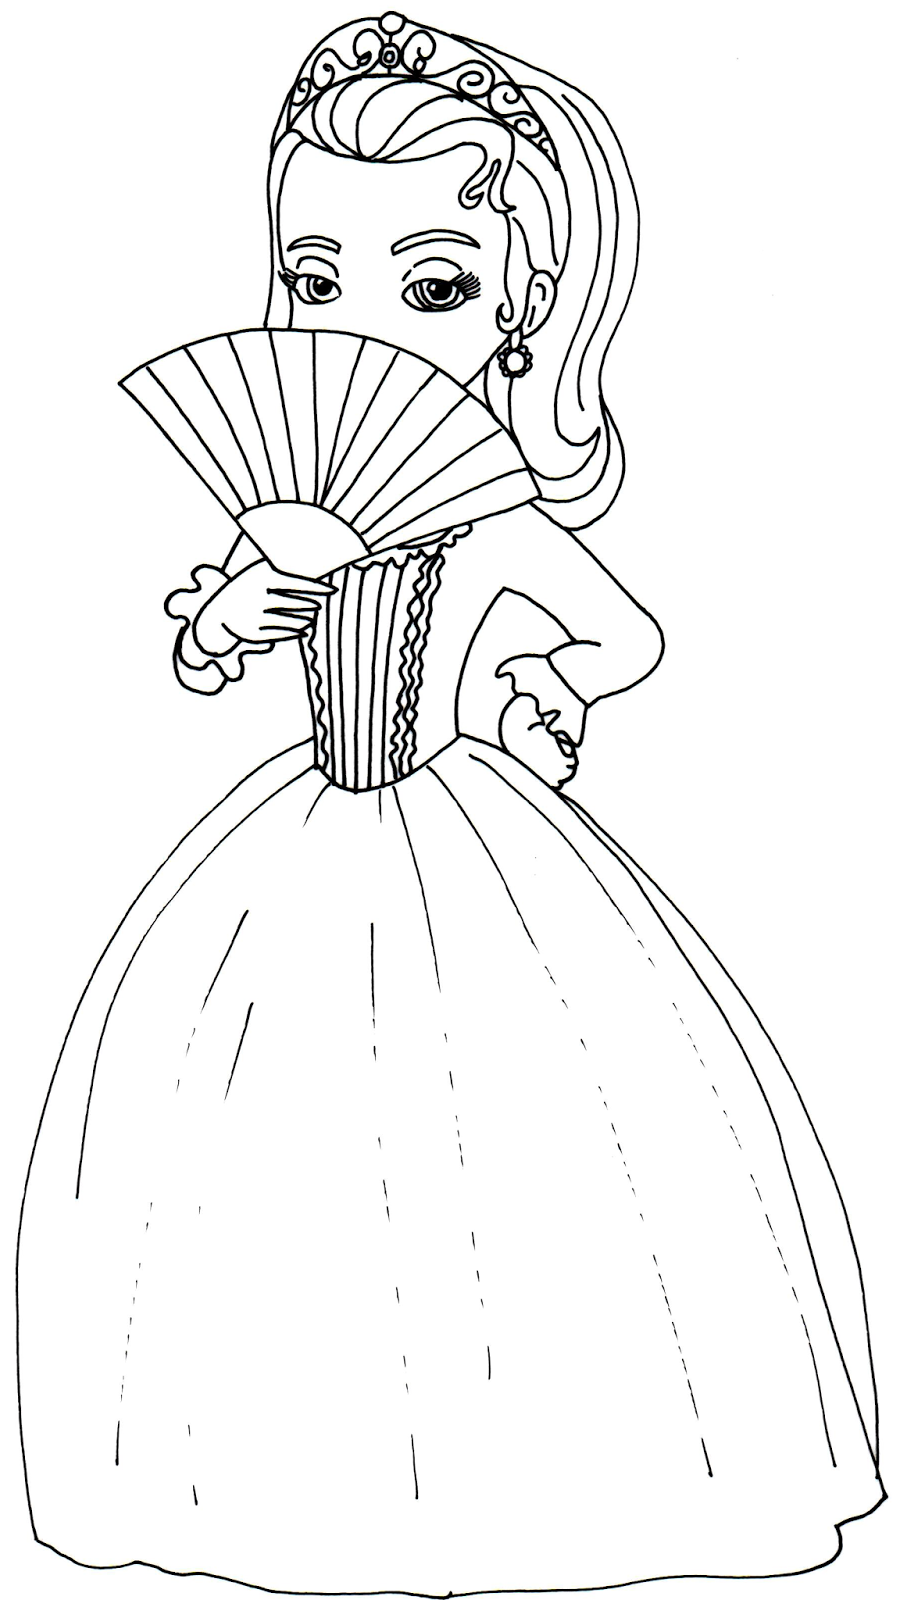 Sofia The First Coloring Pages: Princess Amber Sofia the First ...